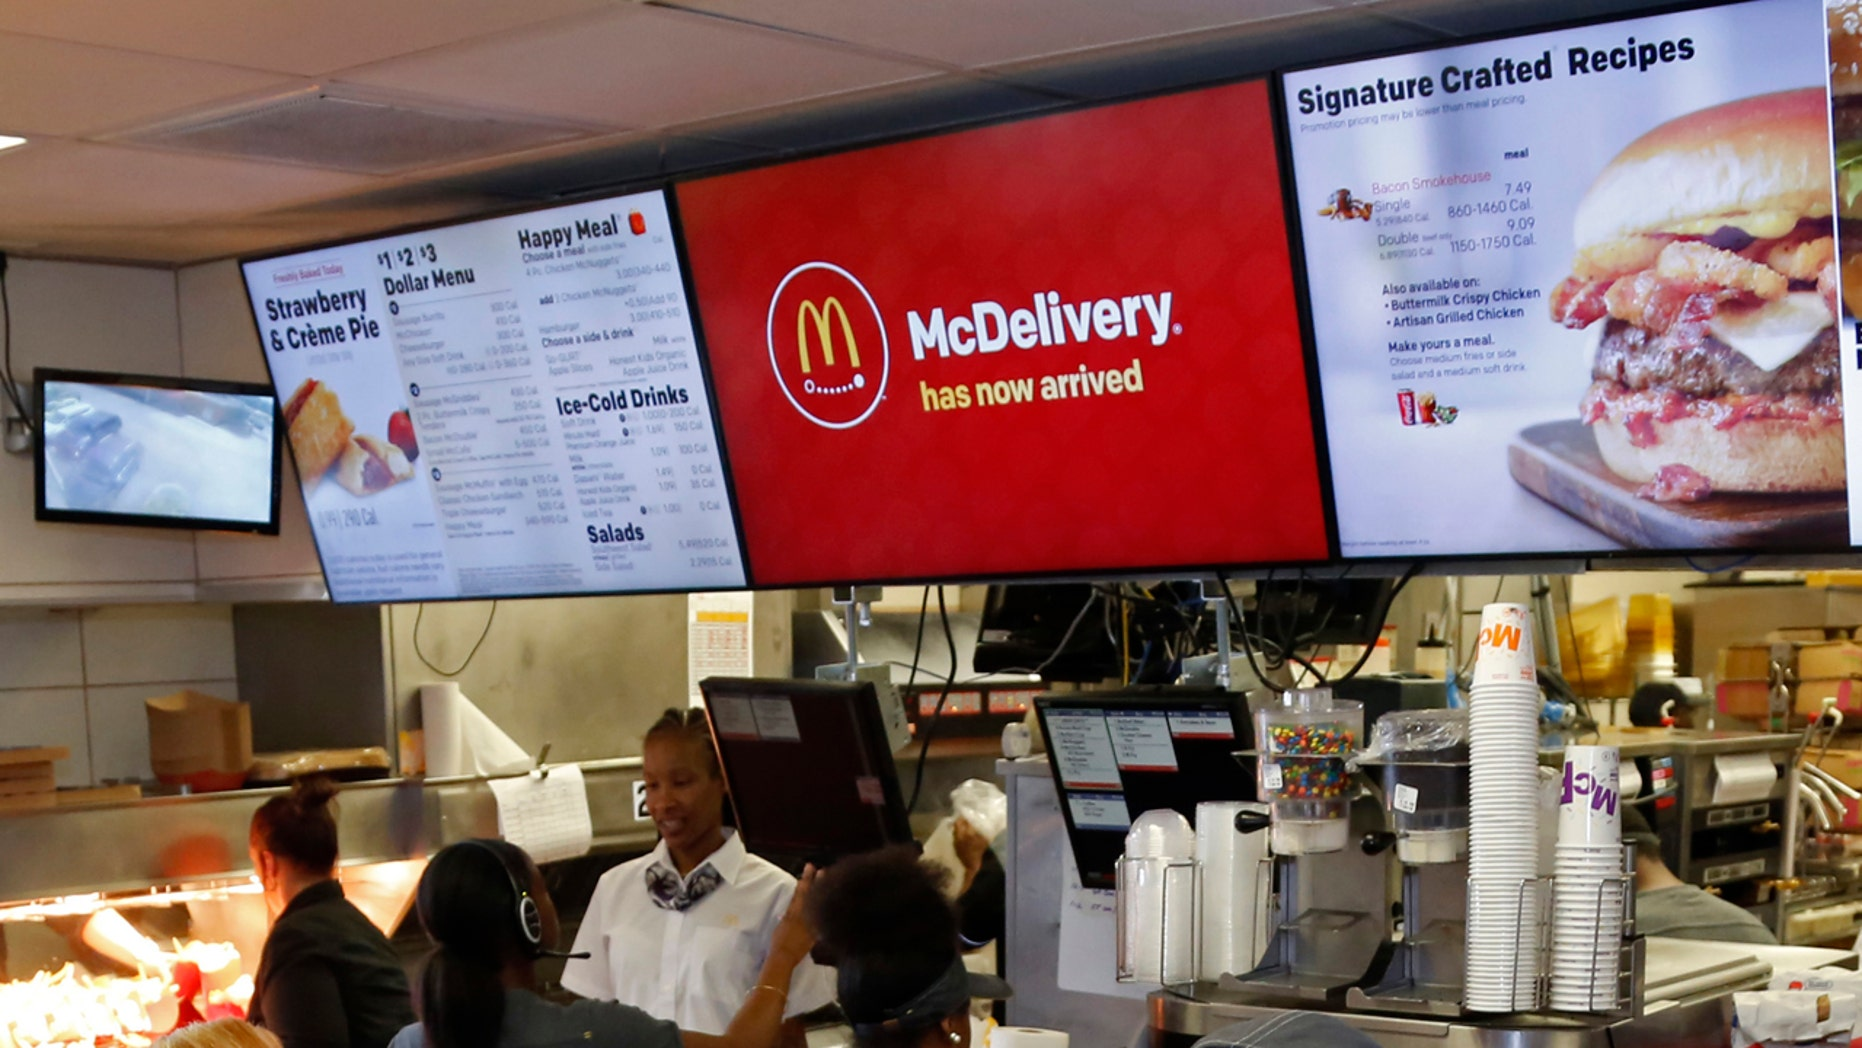 FILE: A McDonald's restaurant in Pittsburgh, July 18, 2018. Mobster Sylvester Zottola, 71, was fatally shot at a McDonald's drive-thru in the Bronx on Thursday, sources said.